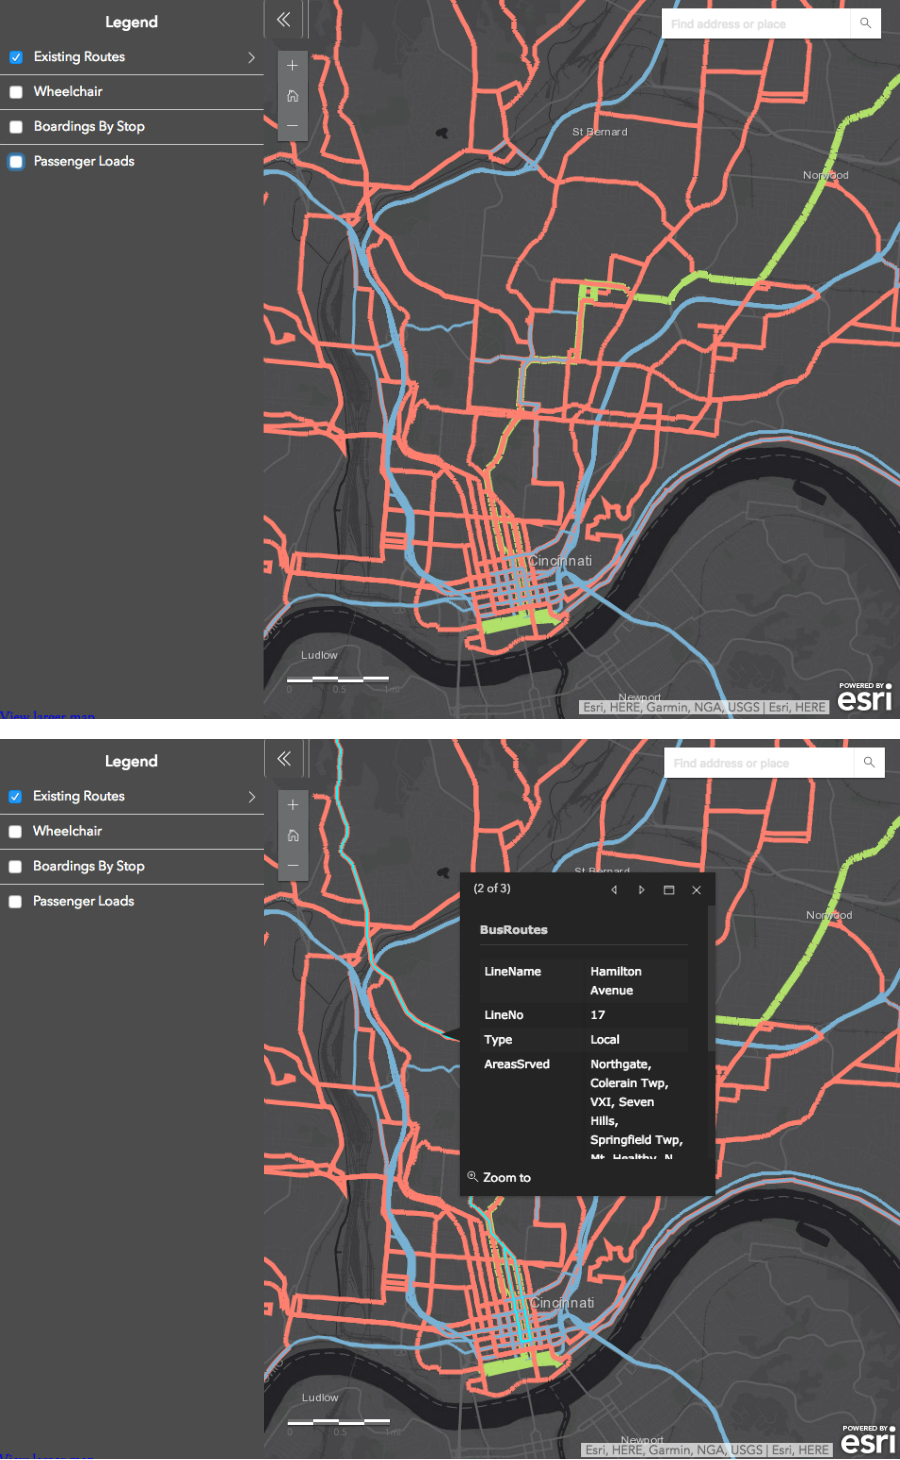 Bus advocate hopes new map will show just how many people